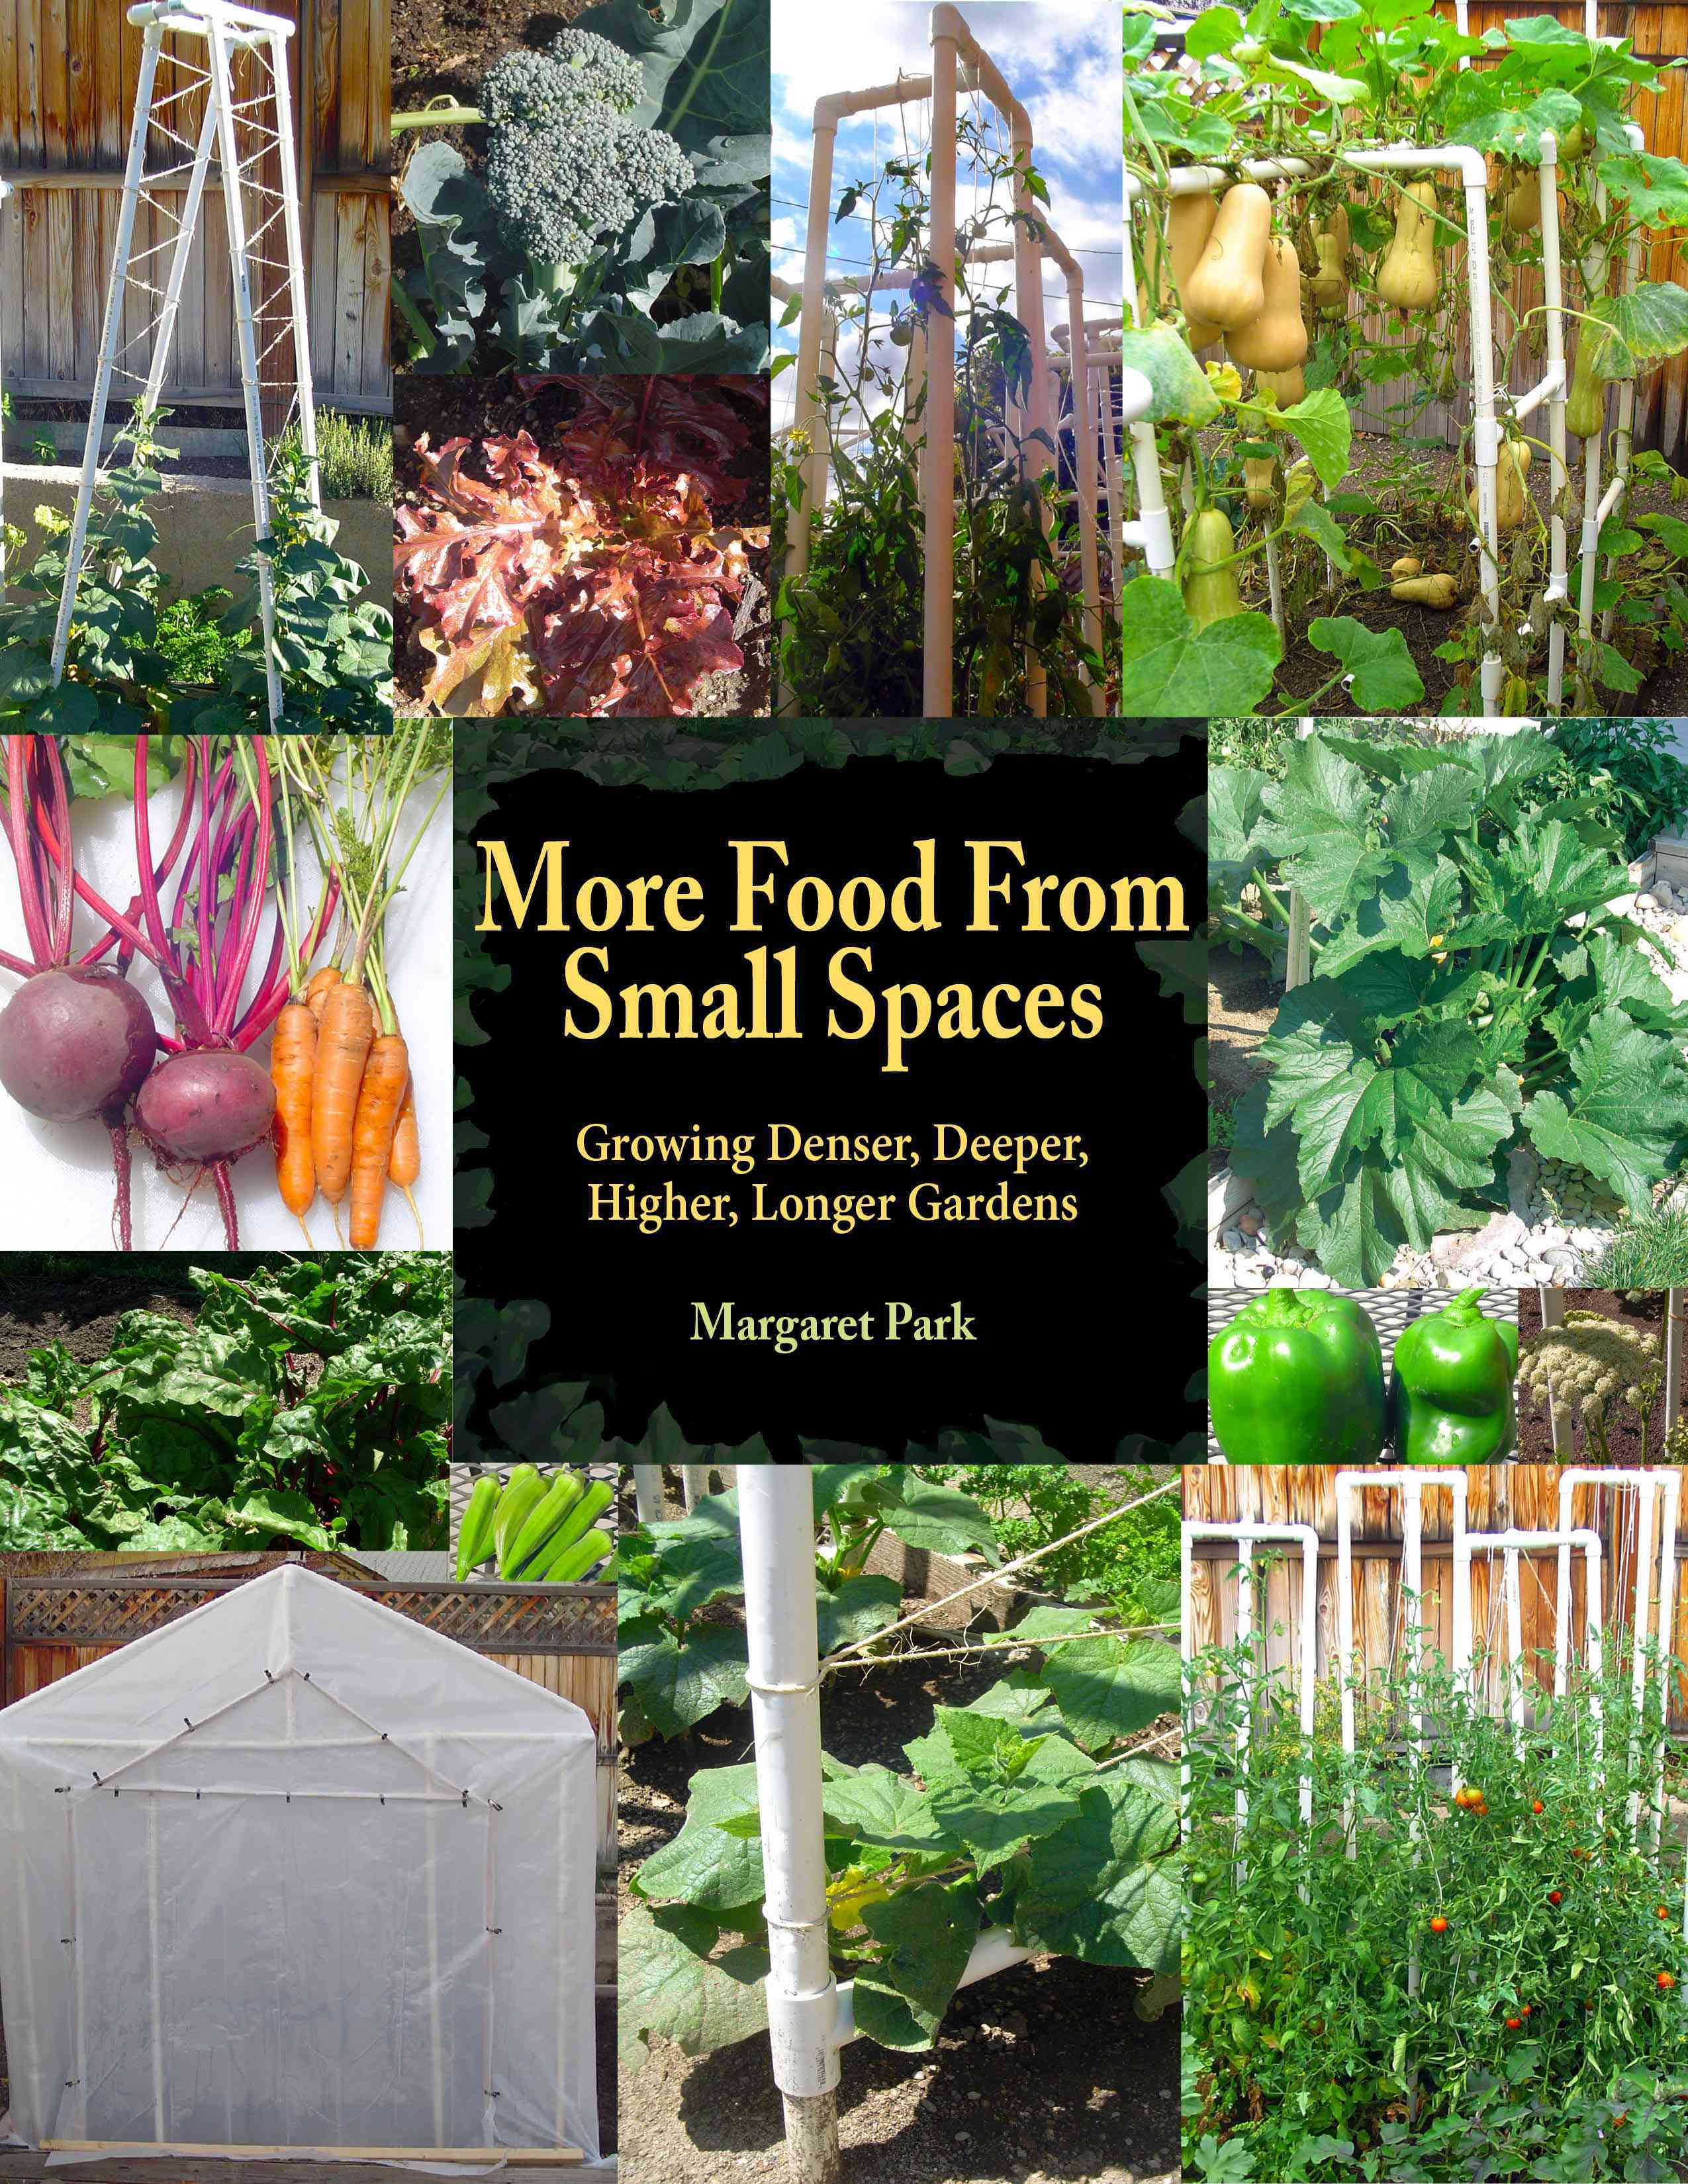 More Food from Small Spaces: Growing Denser, Deeper, Higher, Longer Gardens (Paperback)